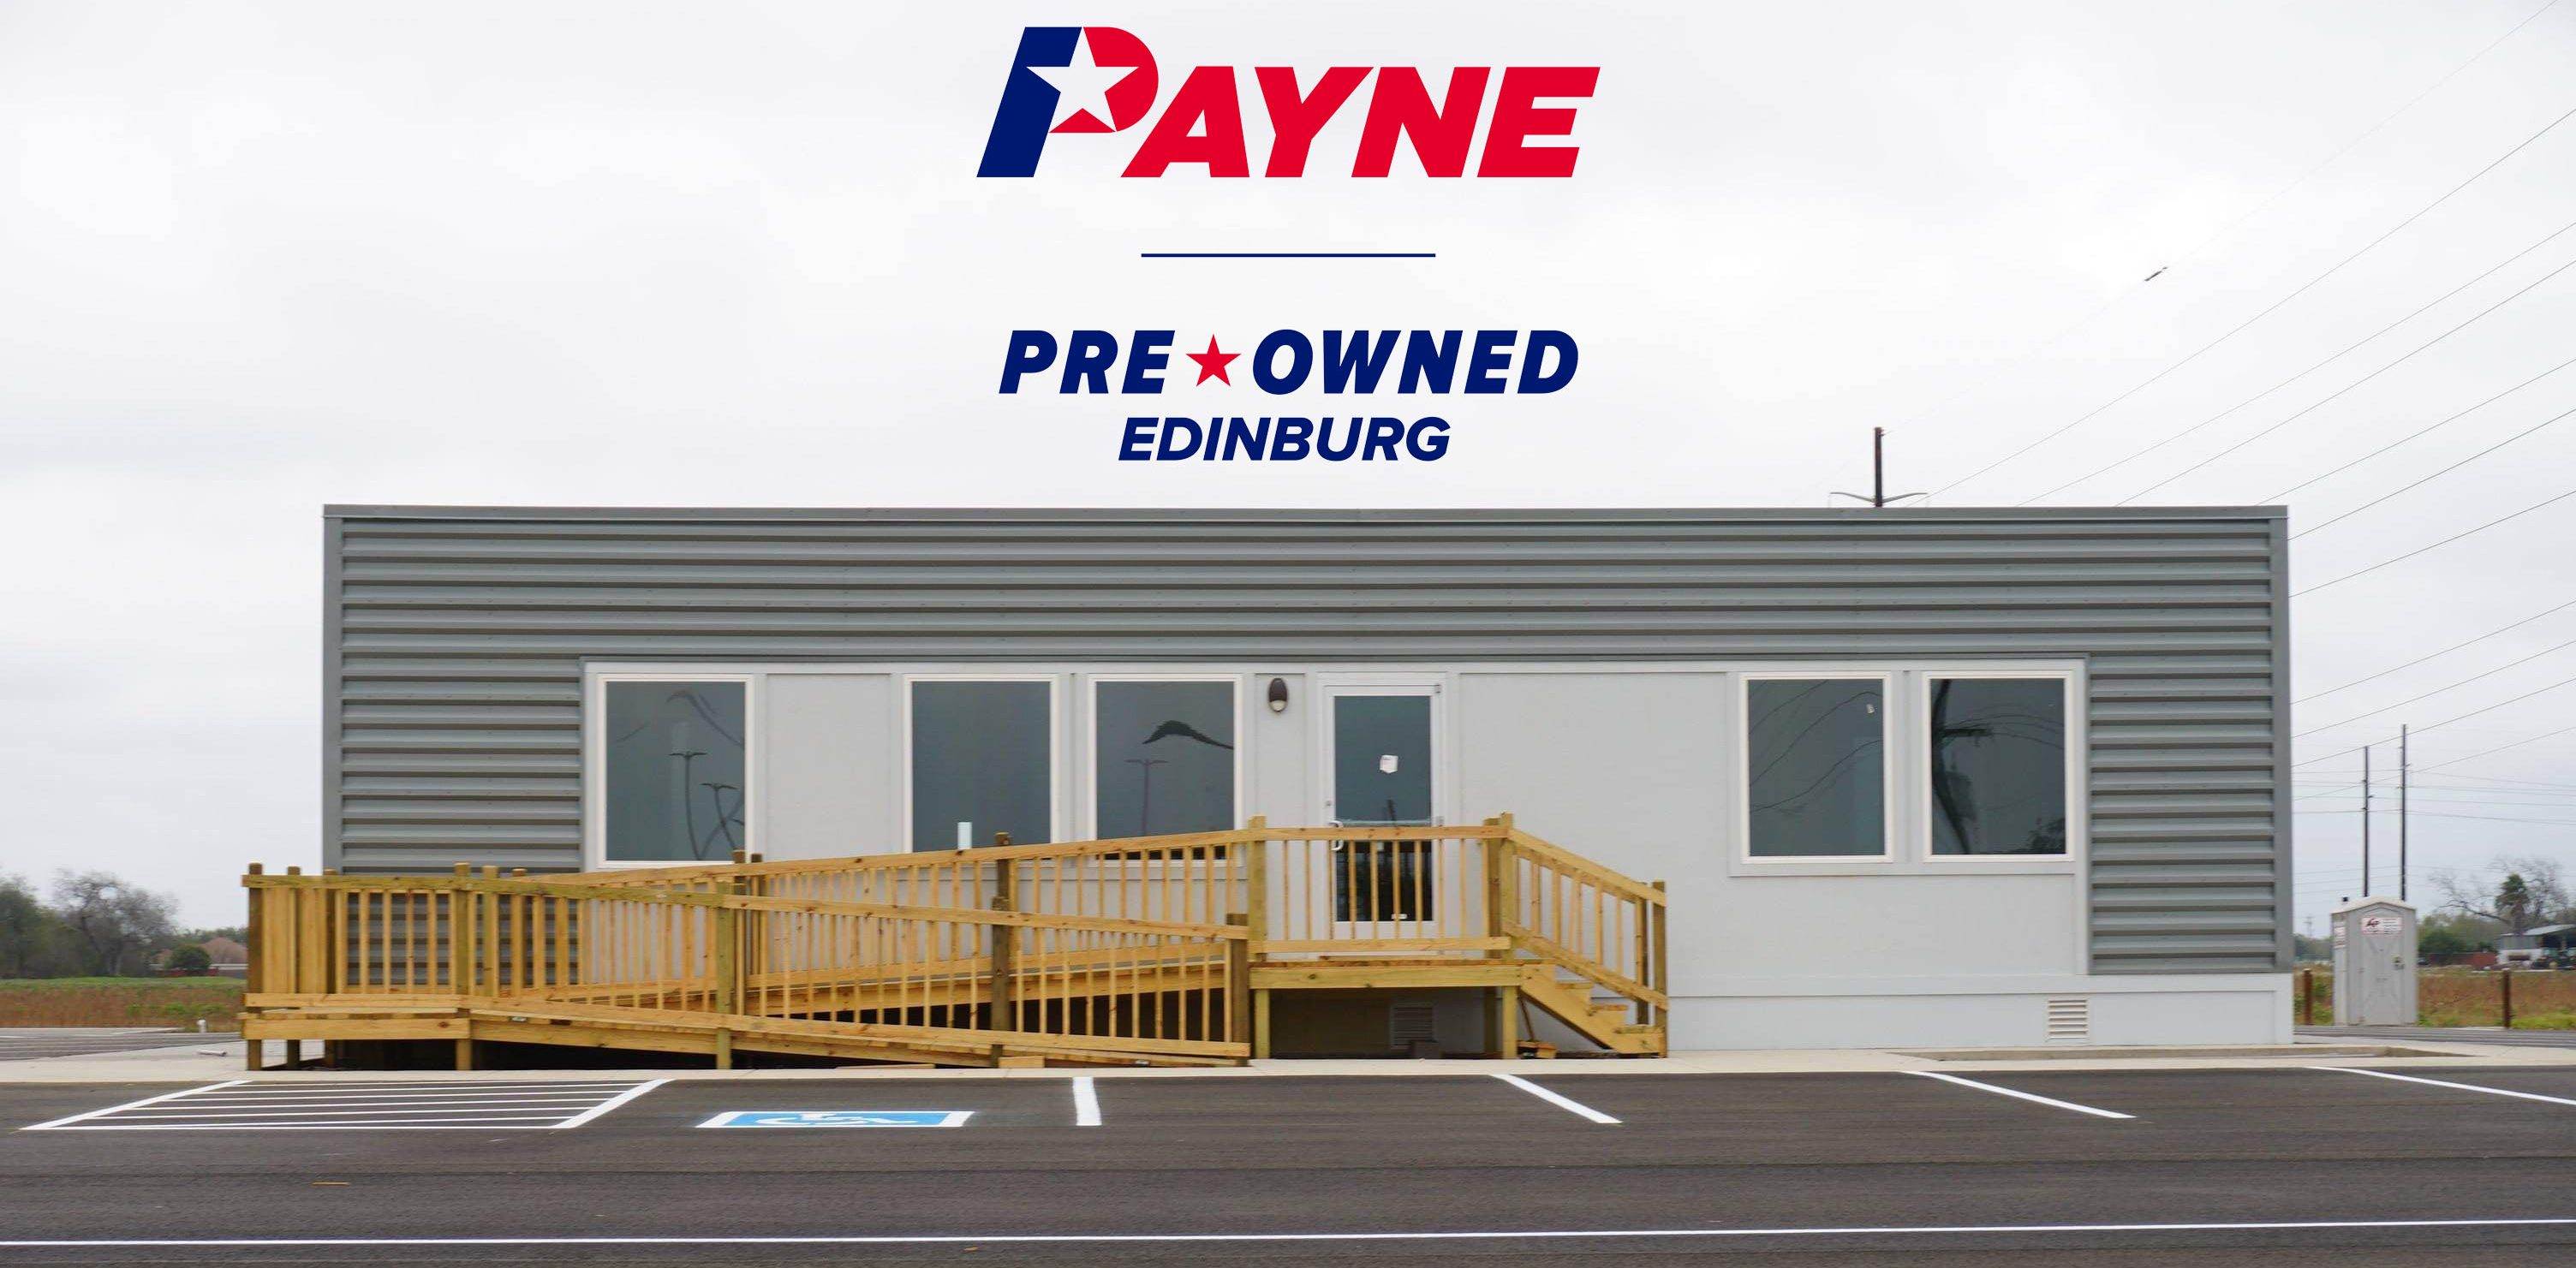 Be on the Lookout for Payne PreOwned Edinburg